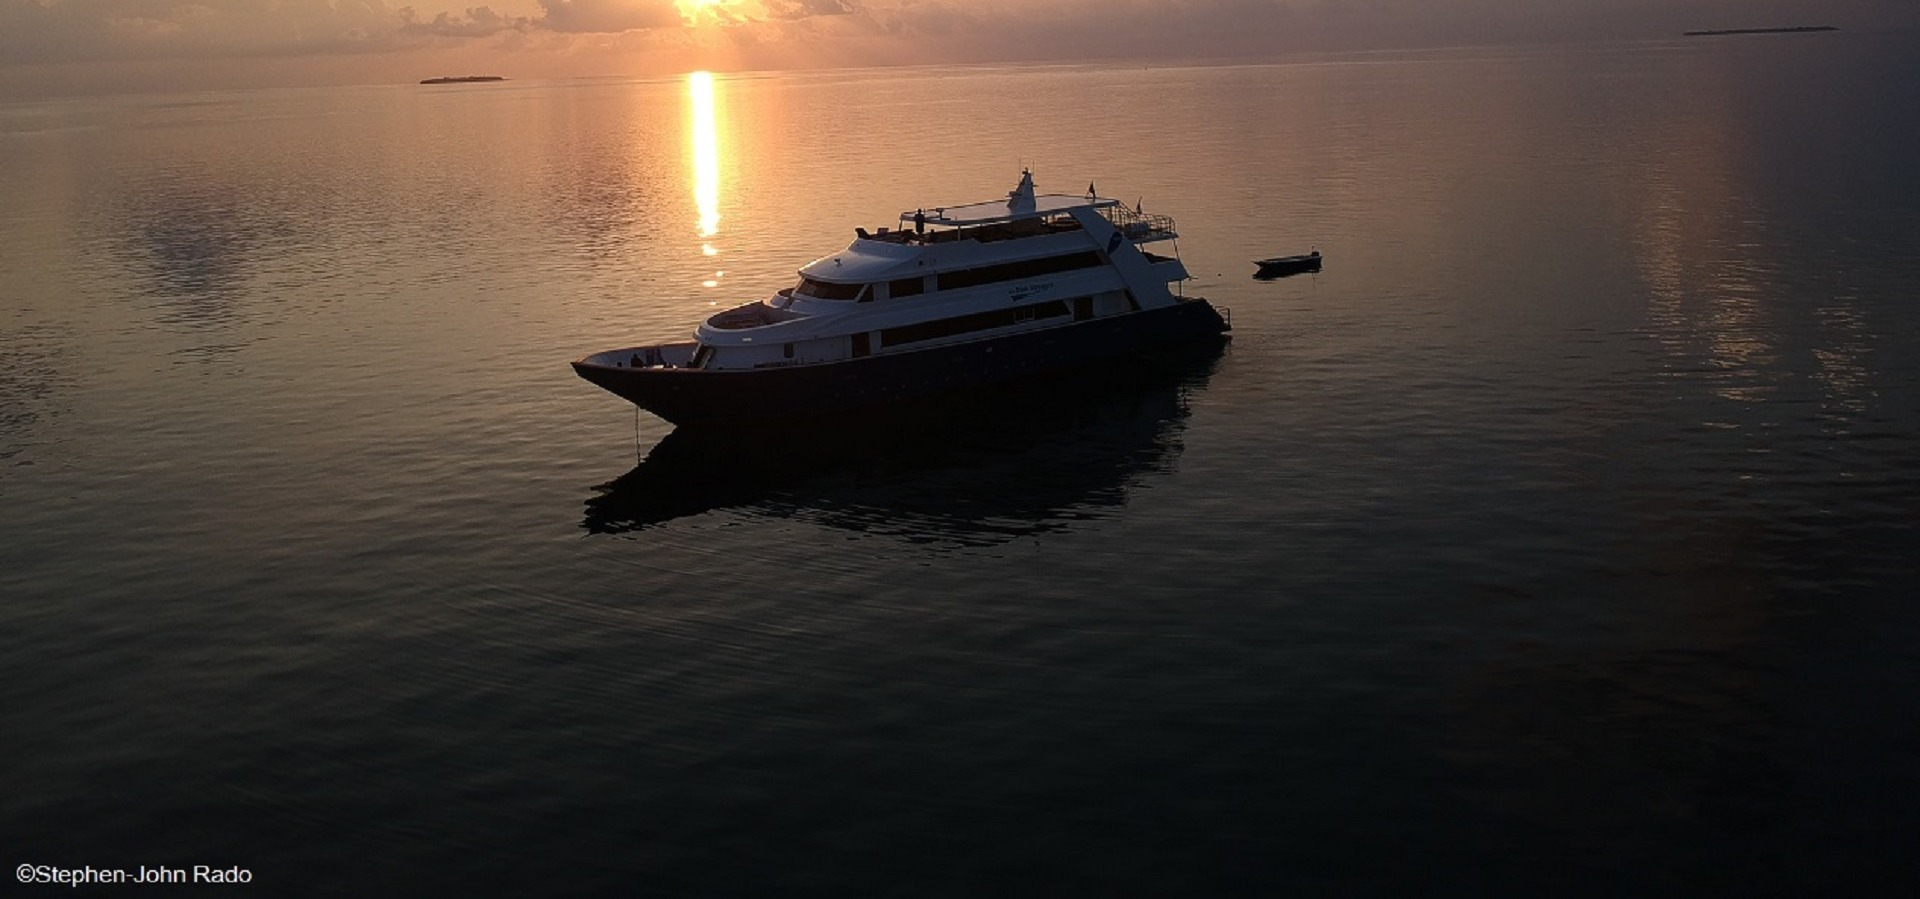 blue Voyager sunset, Maldives. Credit to Stephen-John Rado